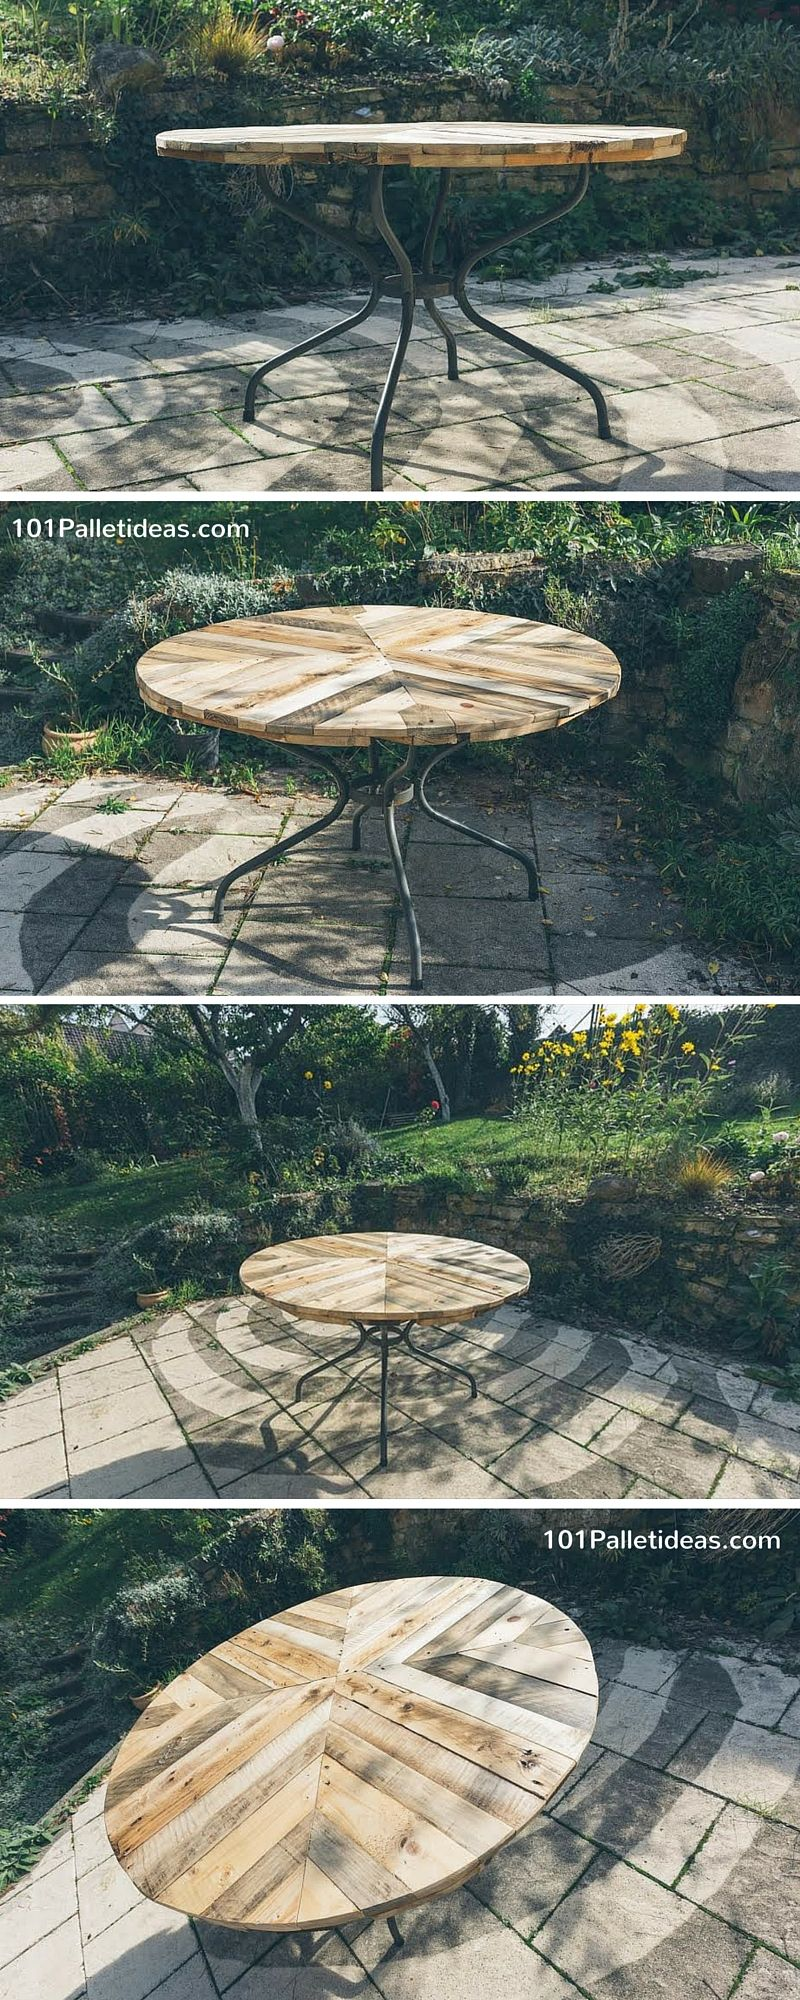 Decoracion Con Palets Redonda Round Top Table Made Of Pallets Diy 101 Pallet Ideas